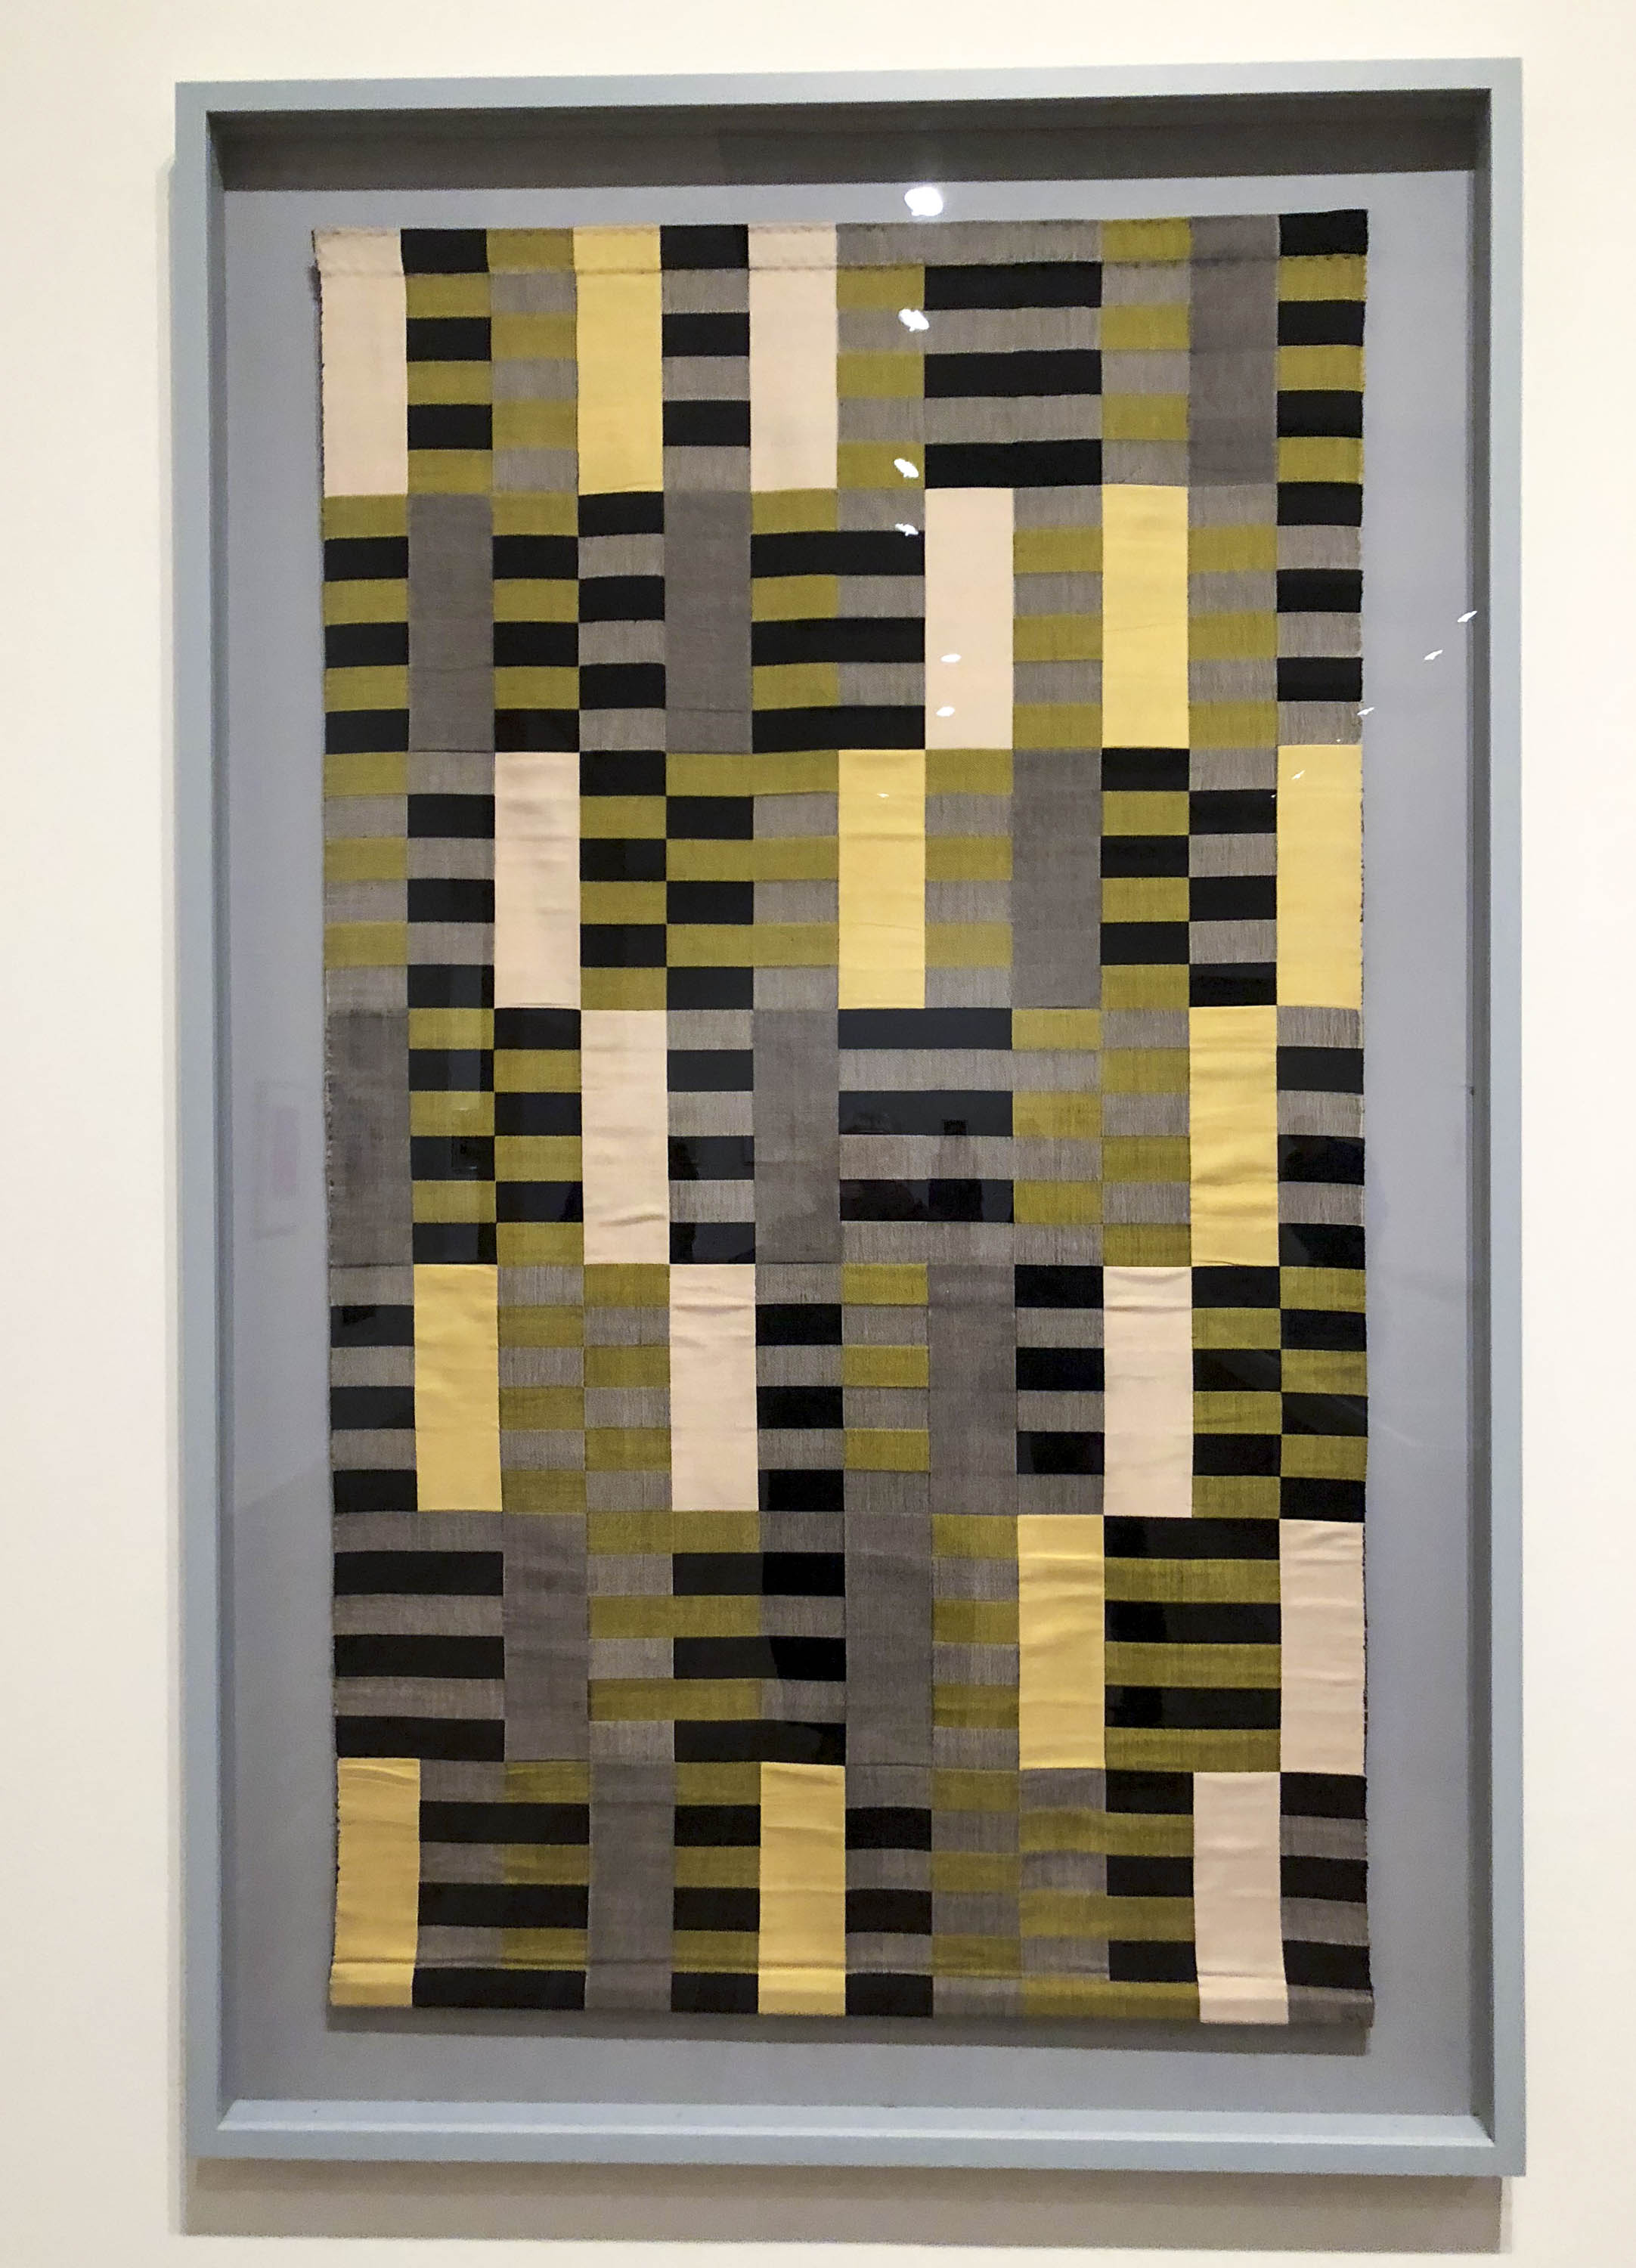 Anni Albers abstract textile panel exhibited at Tate. Four colours in stripes are used to create shifting colours and combinations